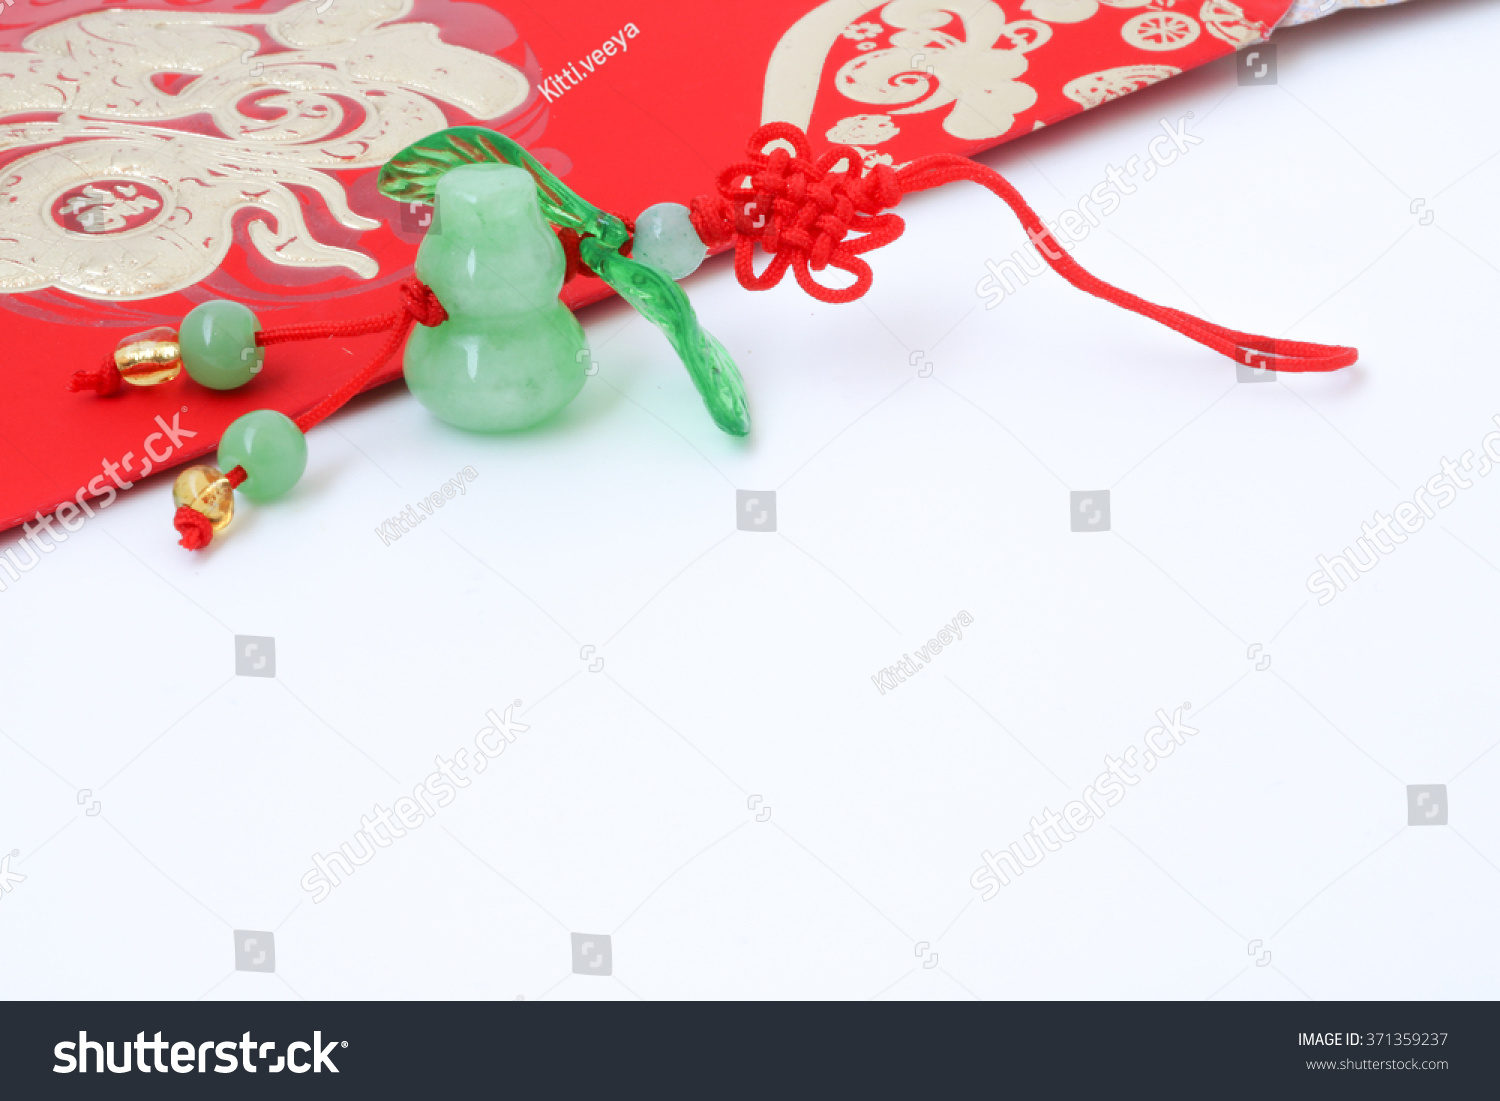 Red pocket on chinese new year stock photo 371359237 shutterstock red pocket on chinese new year chinese text is mean rich gold and long live biocorpaavc Image collections